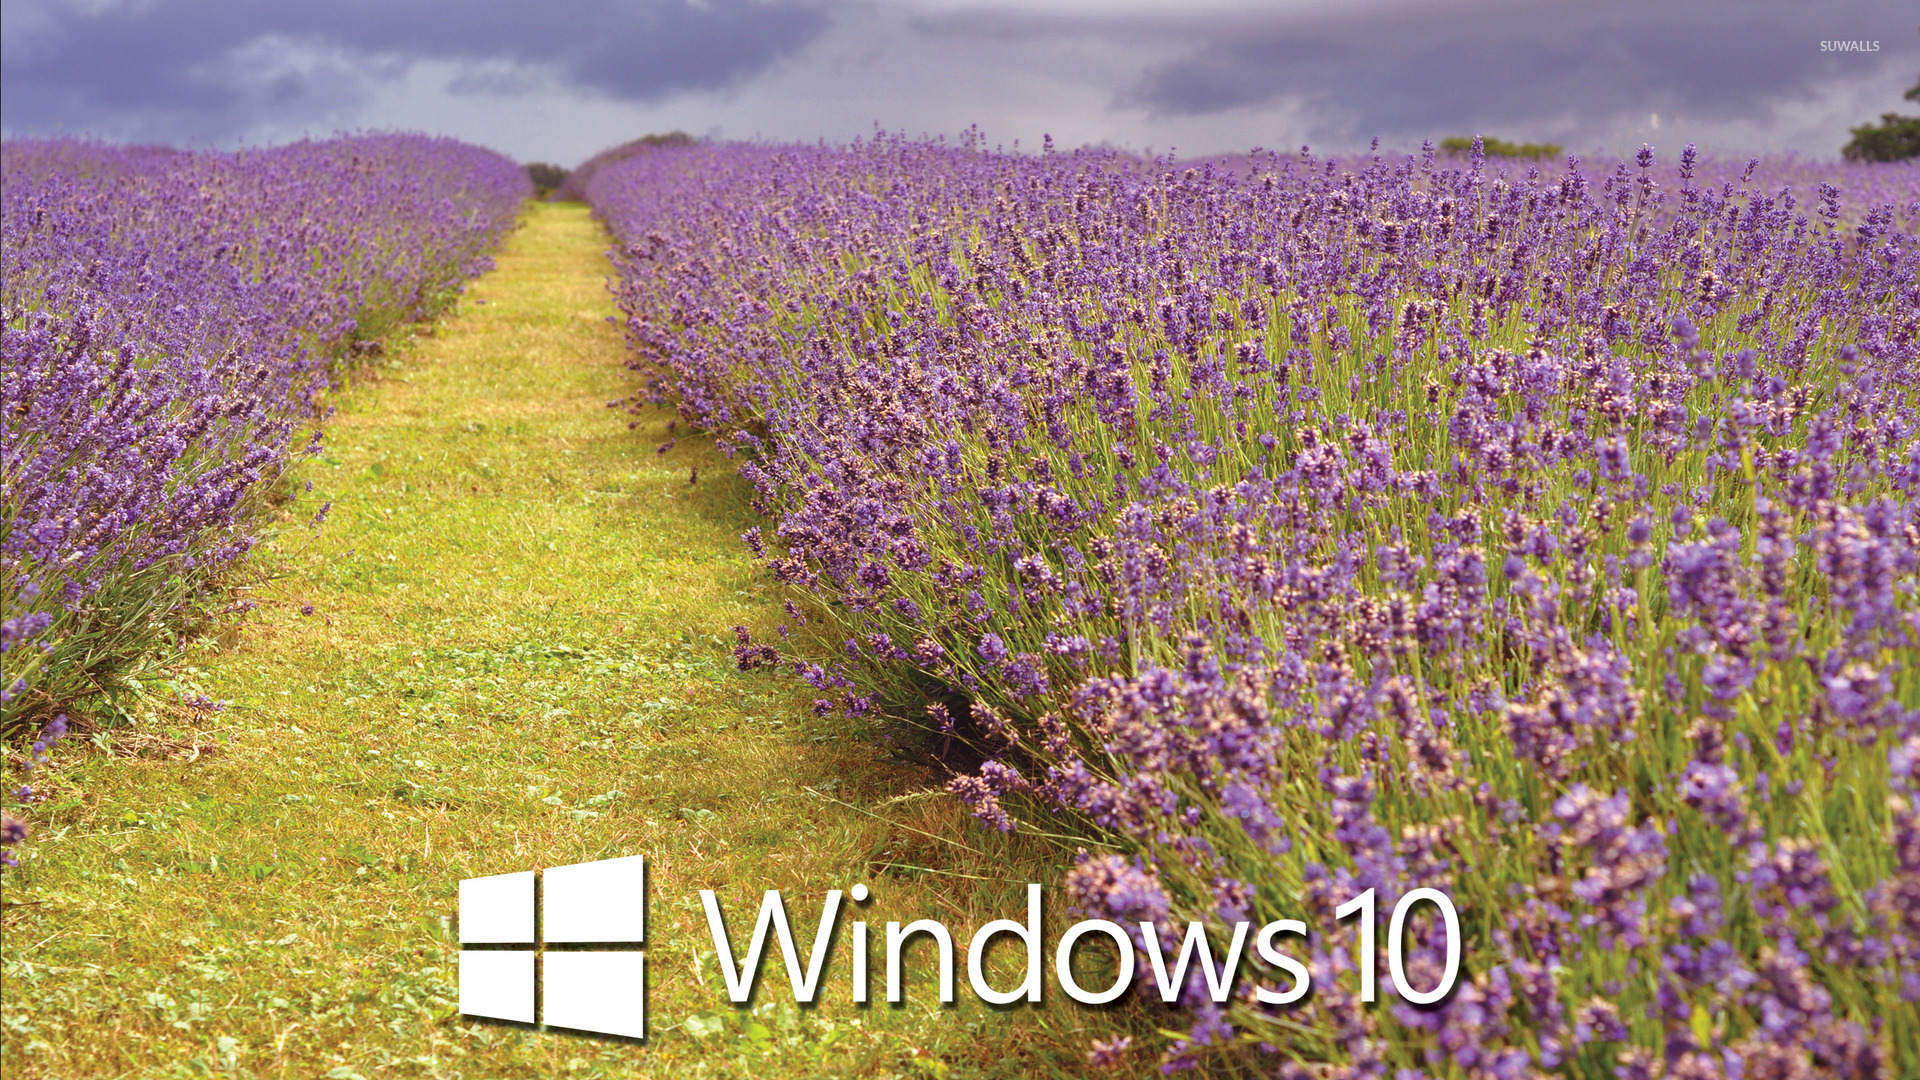 Fall Computer Wallpaper Windows 10 White Text Logo Over The Lavender Field